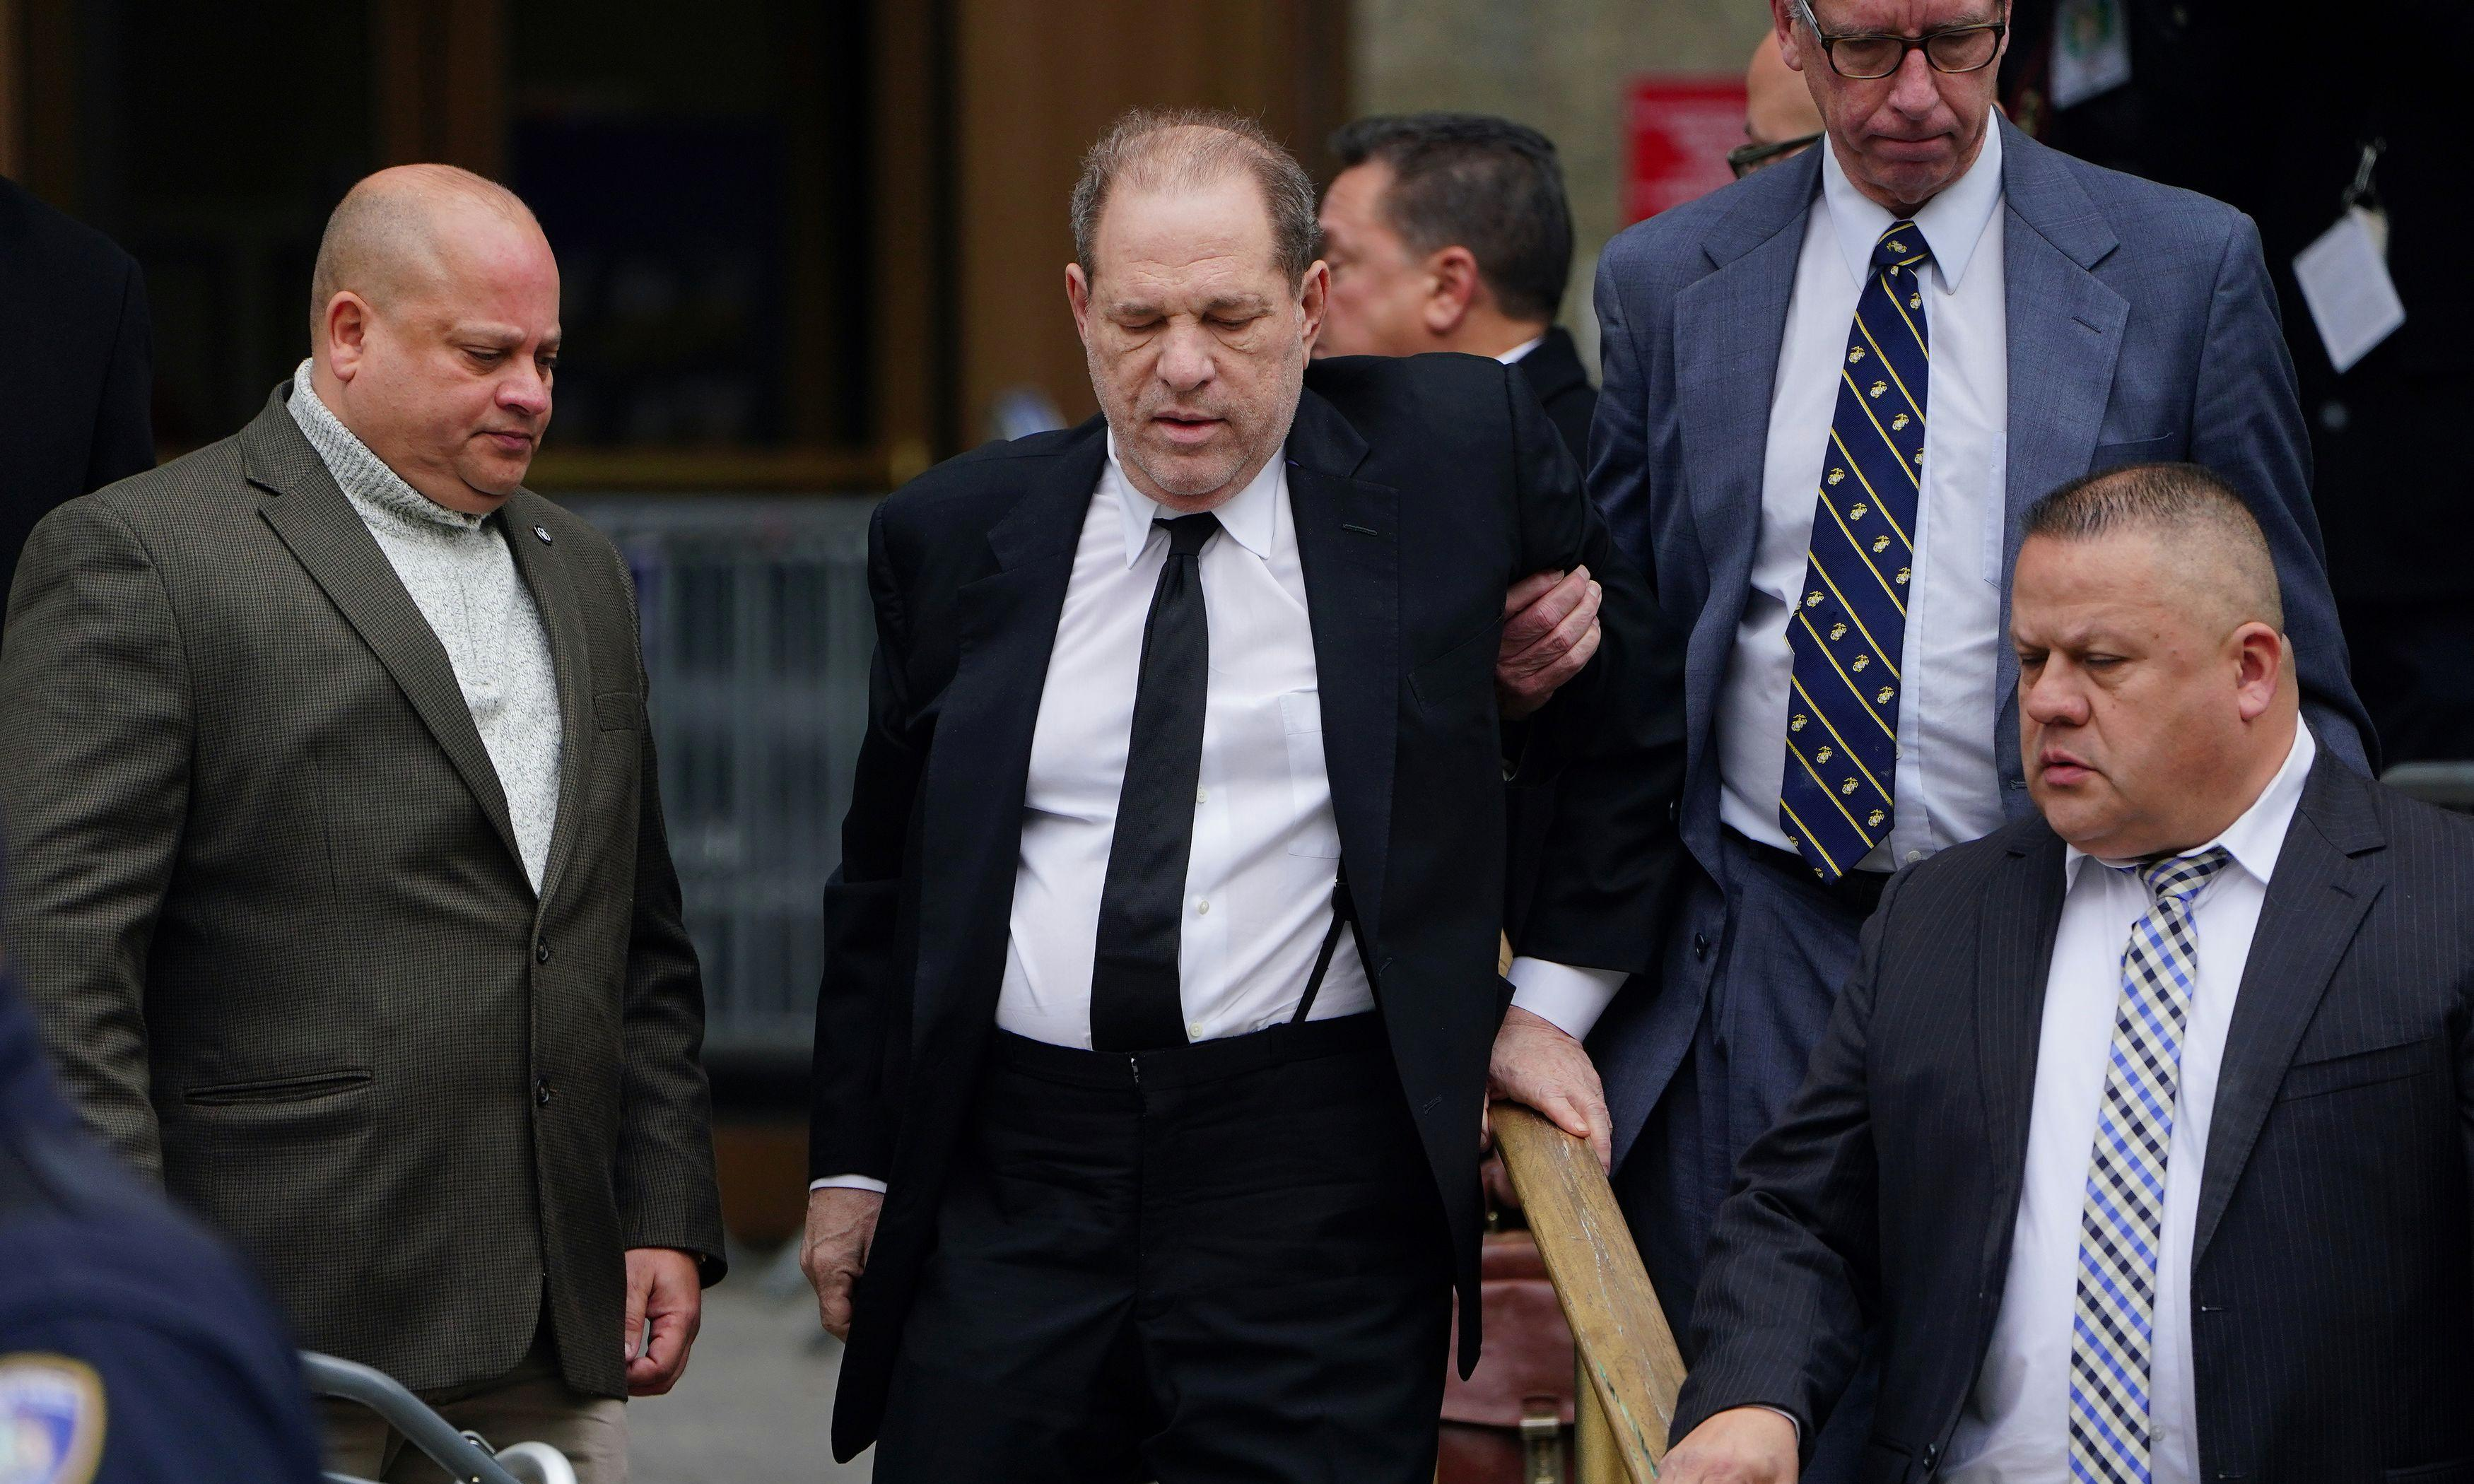 Harvey Weinstein: first day of sexual crimes trial erupts as lawyers trade insults